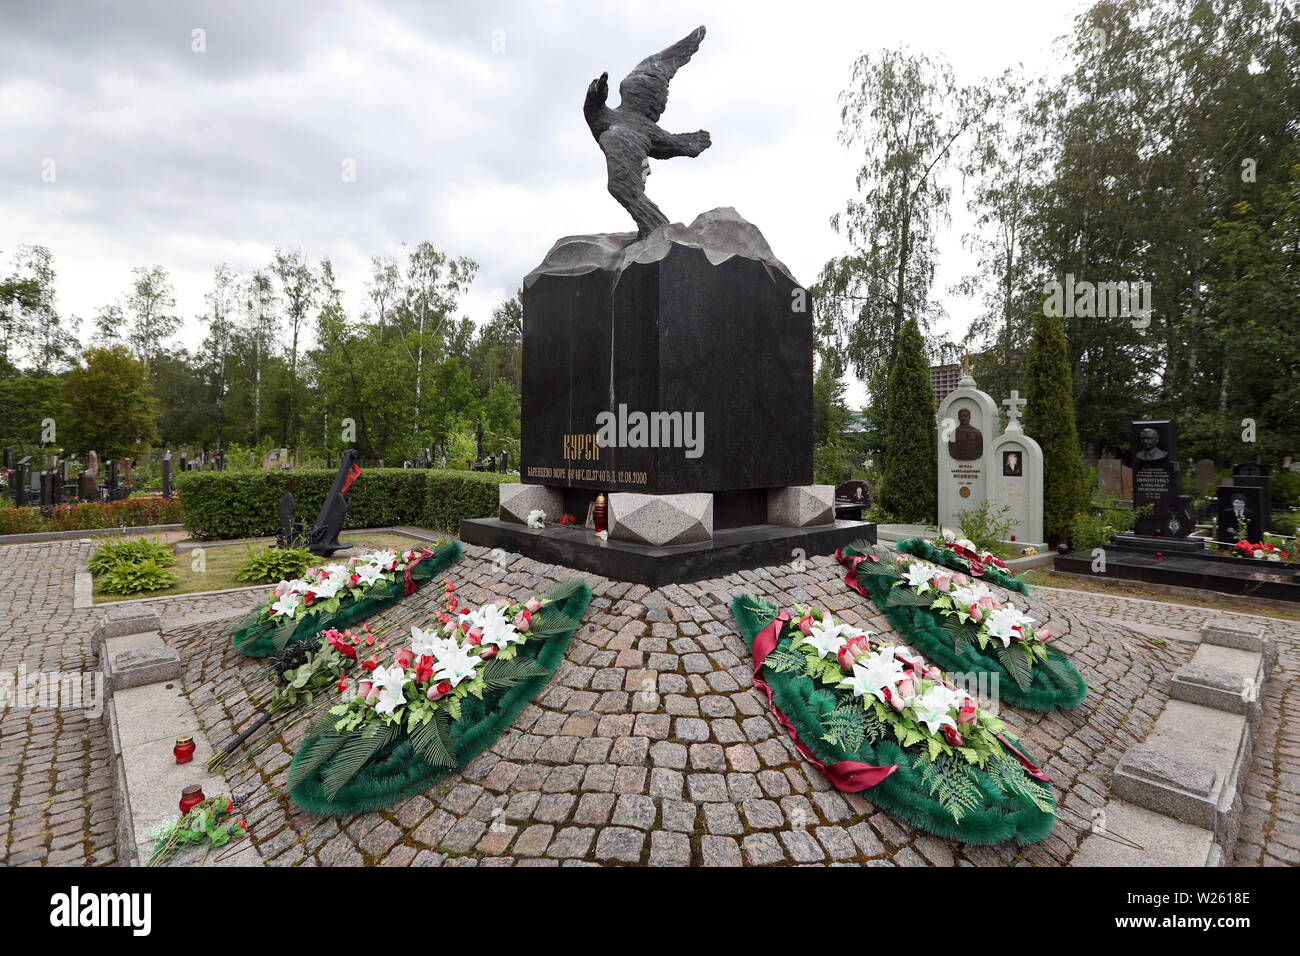 St Petersburg, Russia. 06th July, 2019. ST PETERSBURG, RUSSIA - JULY 6, 2019: A memorial to the victims of the Kursk submarine disaster at the Serafimovskoye cemetery. The Kursk nuclear-powered submarine sank on August 12, 2000, in the Barents Sea waters during Russia's naval exercises, after an explosion onboard; all 118 crew members died. Peter Kovalev/TASS Credit: ITAR-TASS News Agency/Alamy Live News - Stock Image